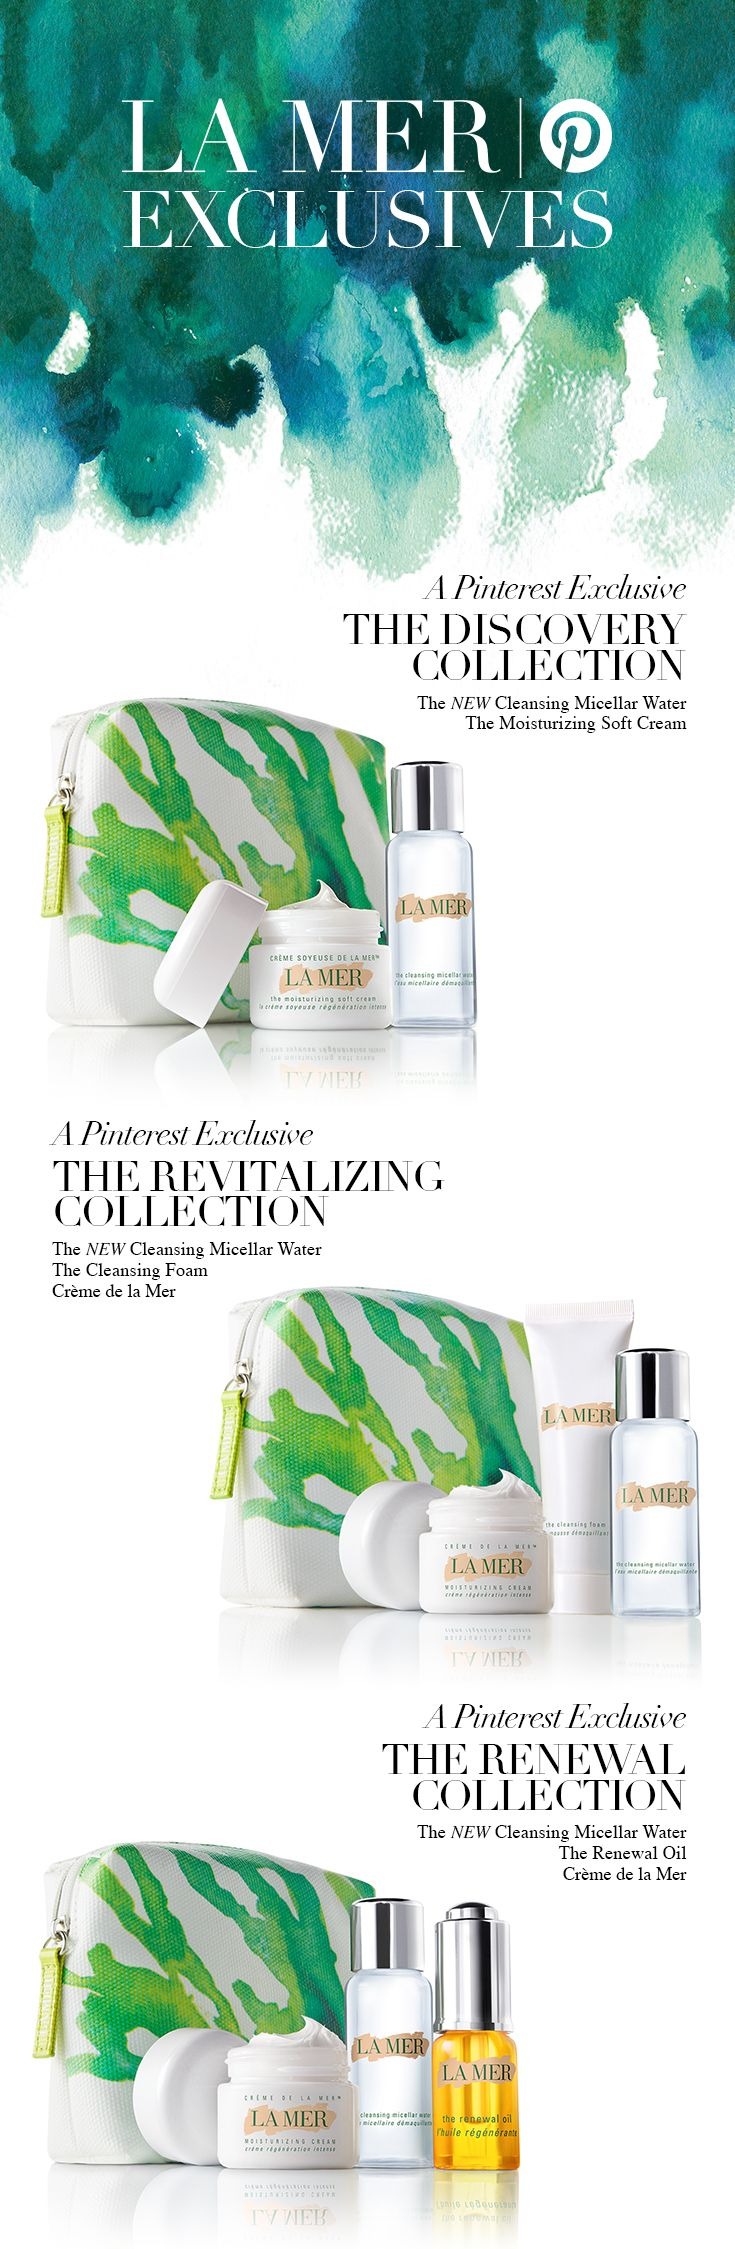 Discover three new La Mer Collections of skincare sets available exclusively on Pinterest. Each set features the NEW Cleansing Micellar Water with perfectly paired products for summer skincare regimens, rituals, trends and travel. #LaMerLovesPinterest http://lamer.co/29eBmrO